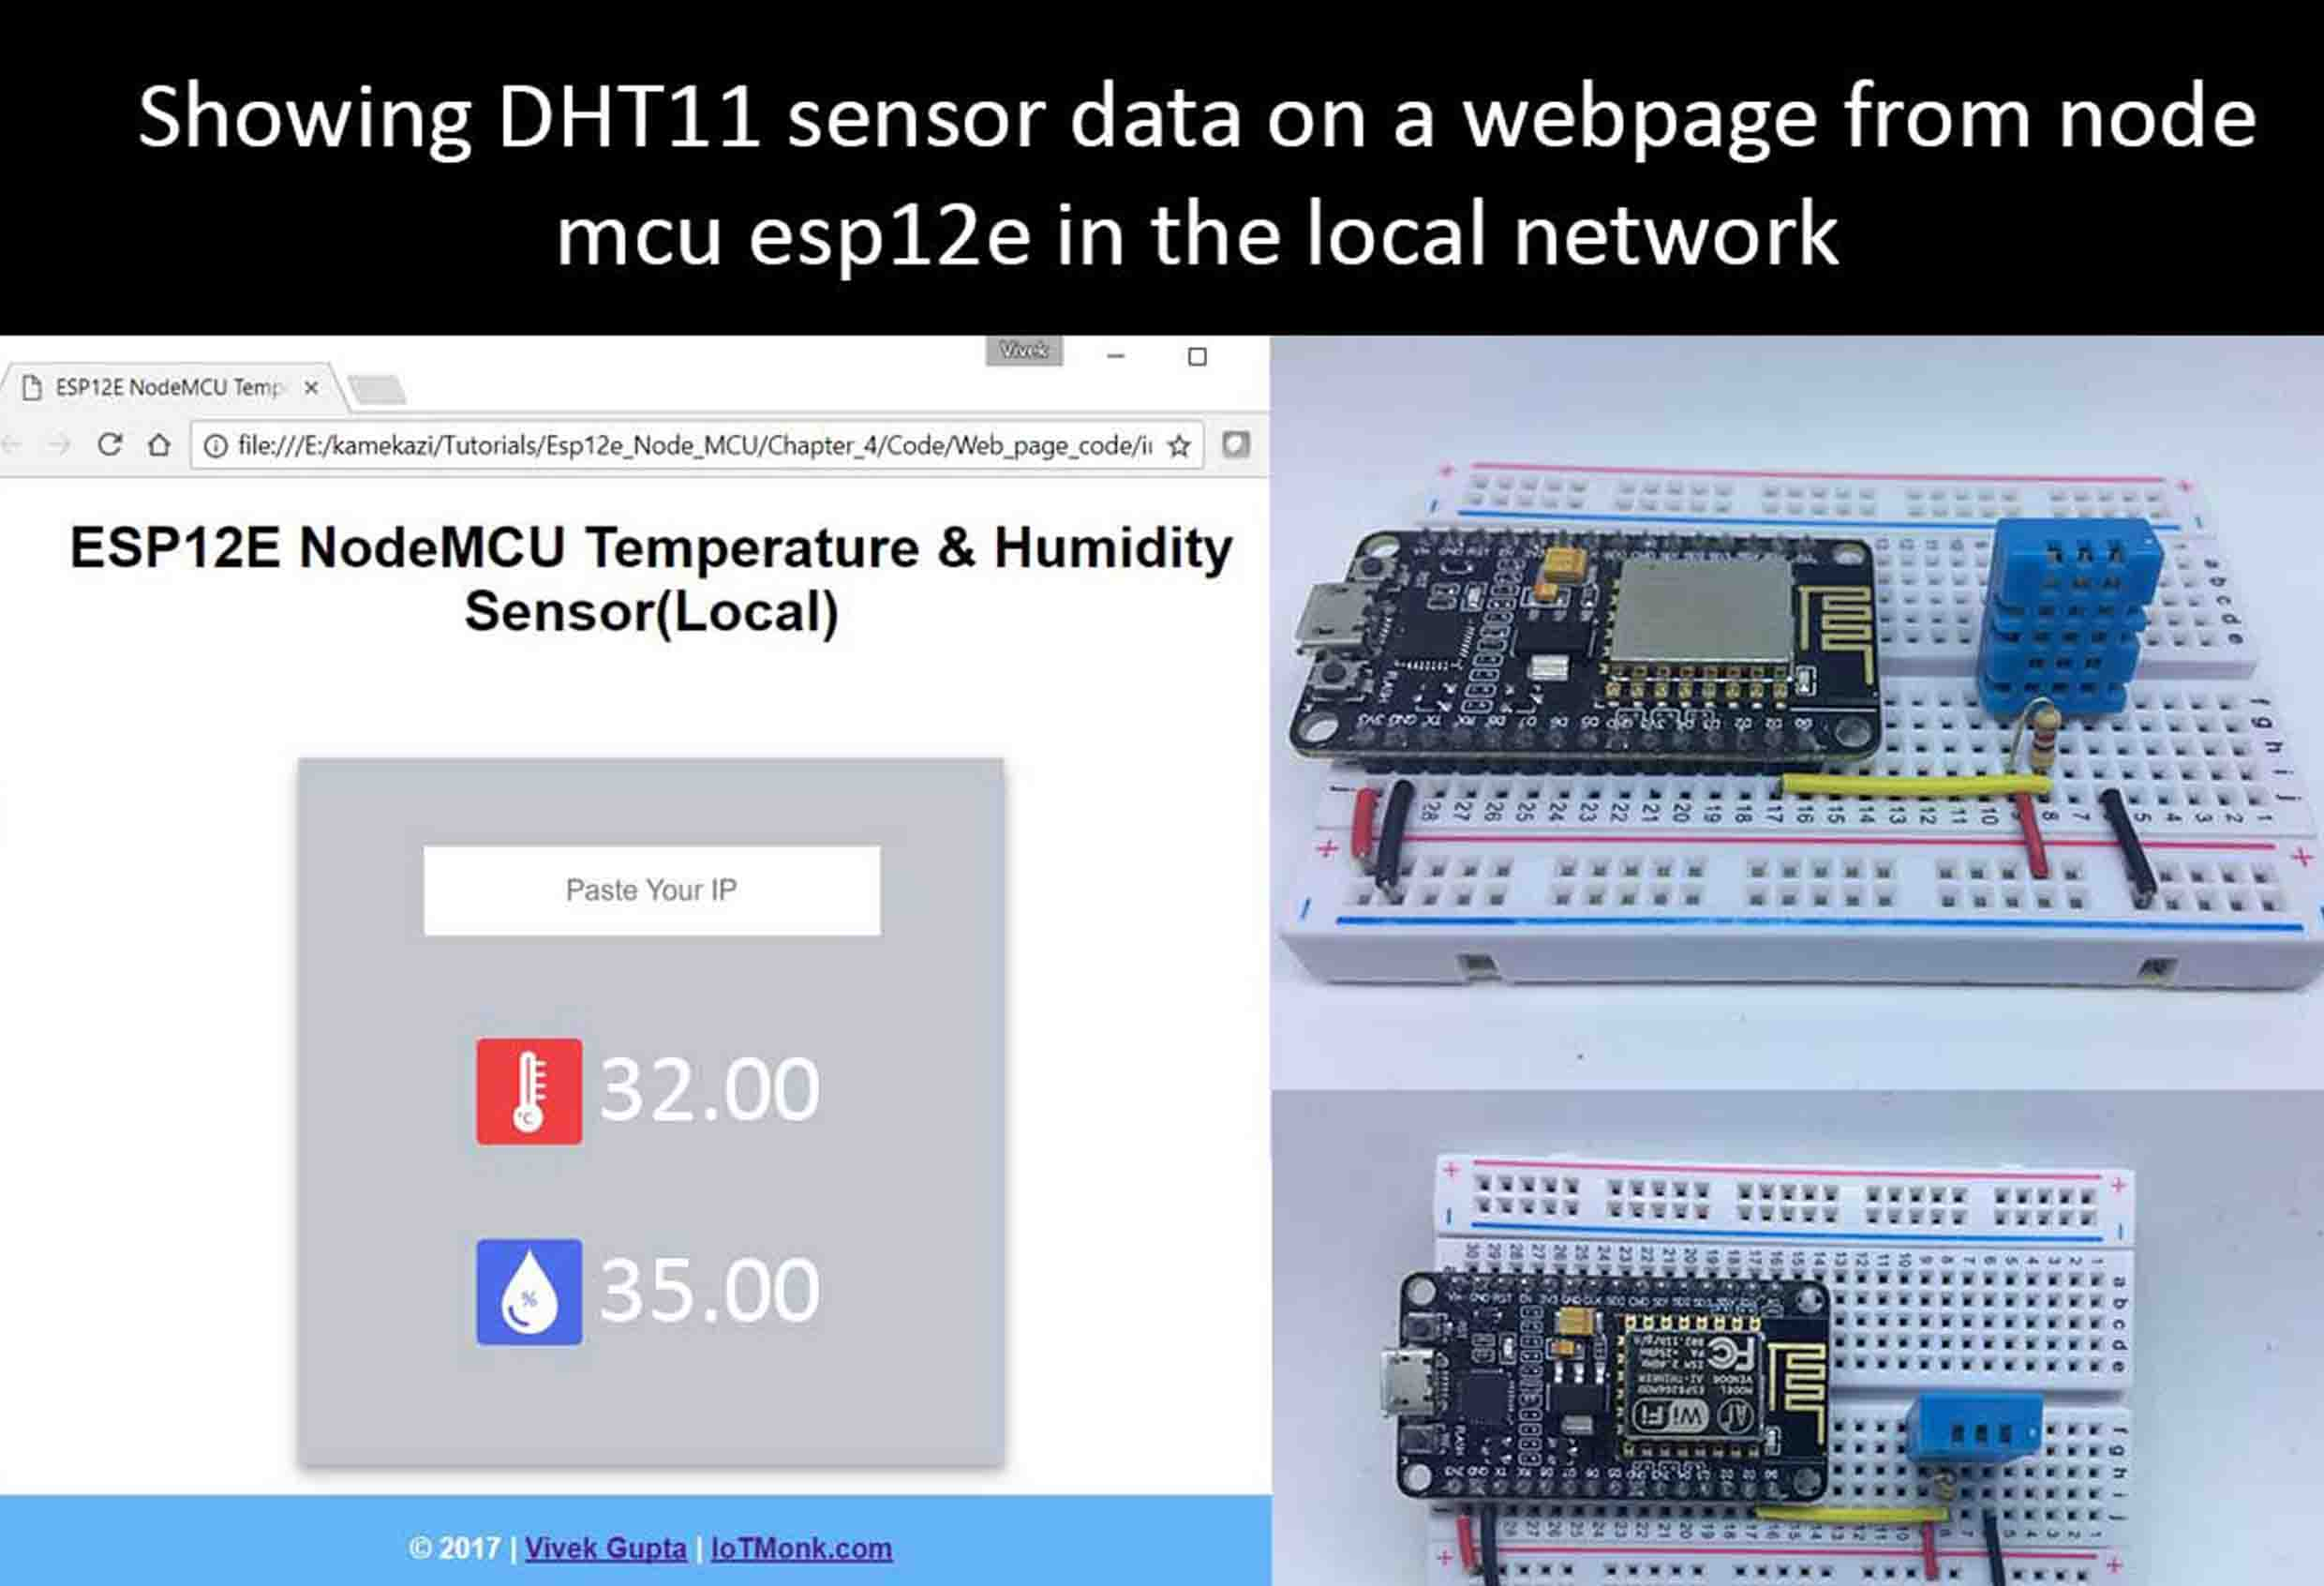 Read Dht11 Value From Nodemcu Esp12e And Show It On